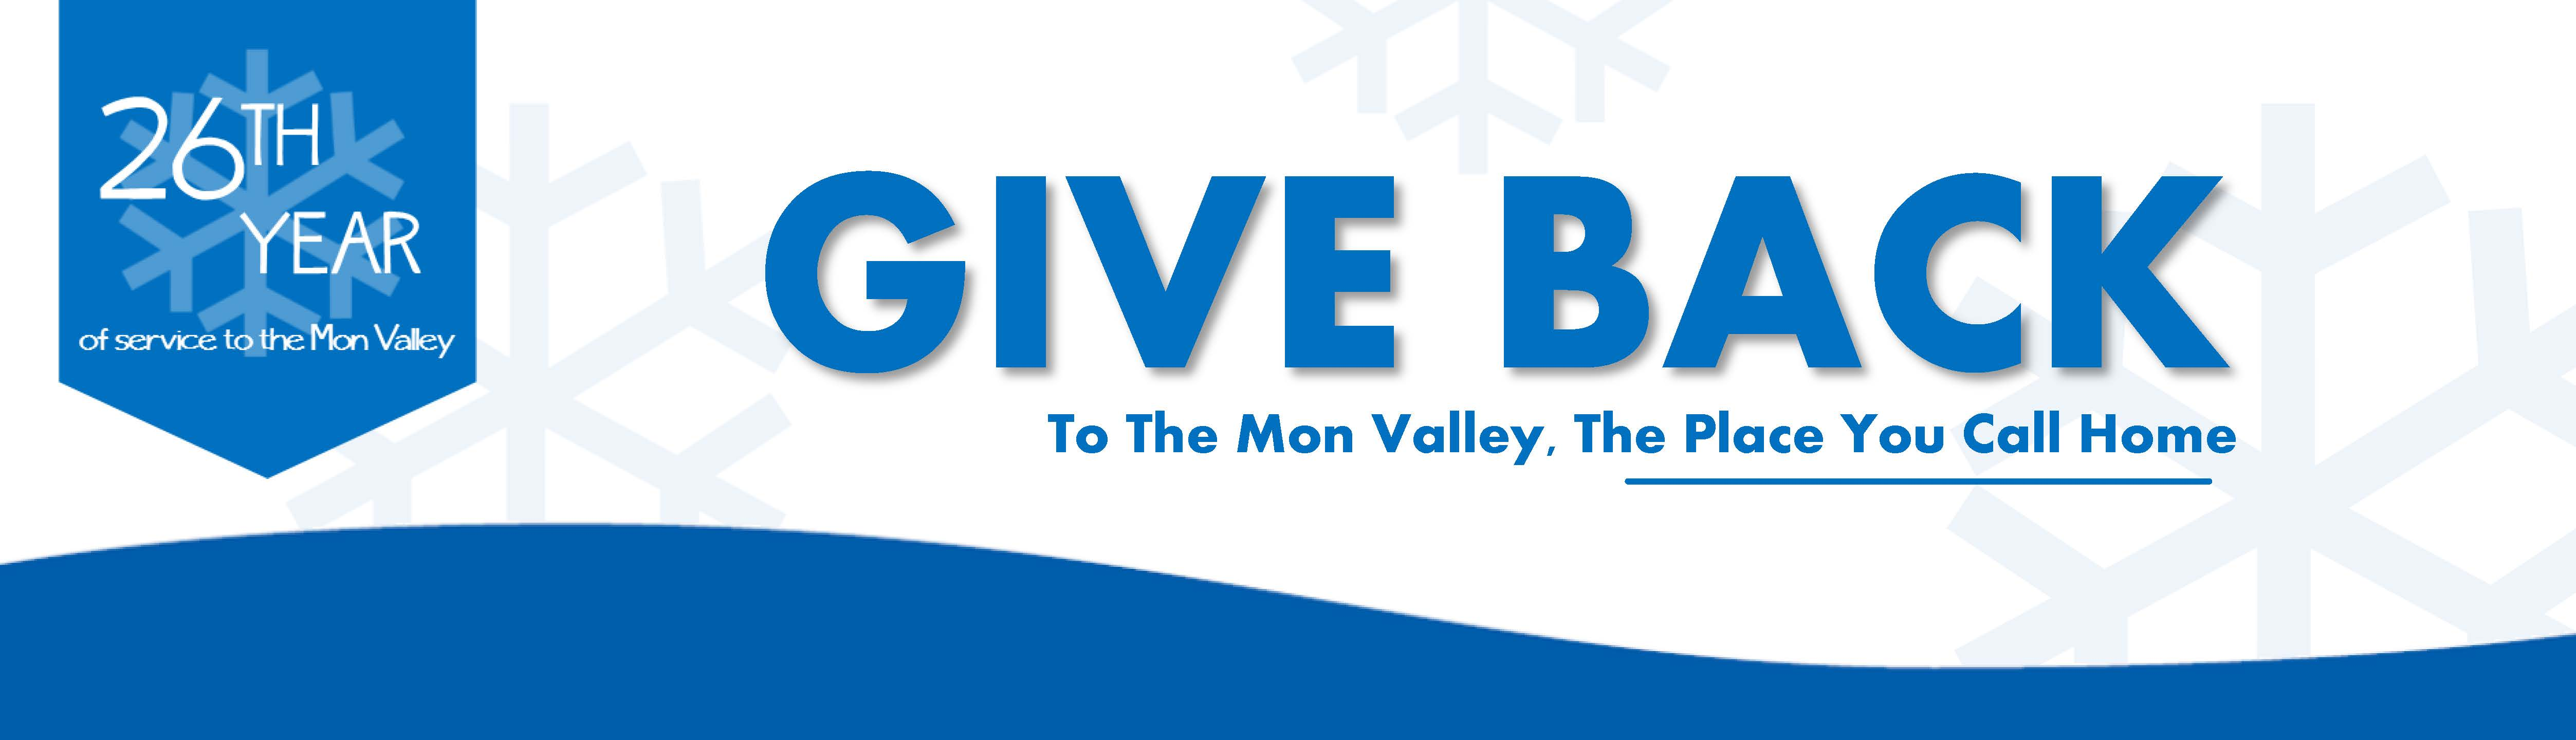 Make a Difference With MVI in 2014!